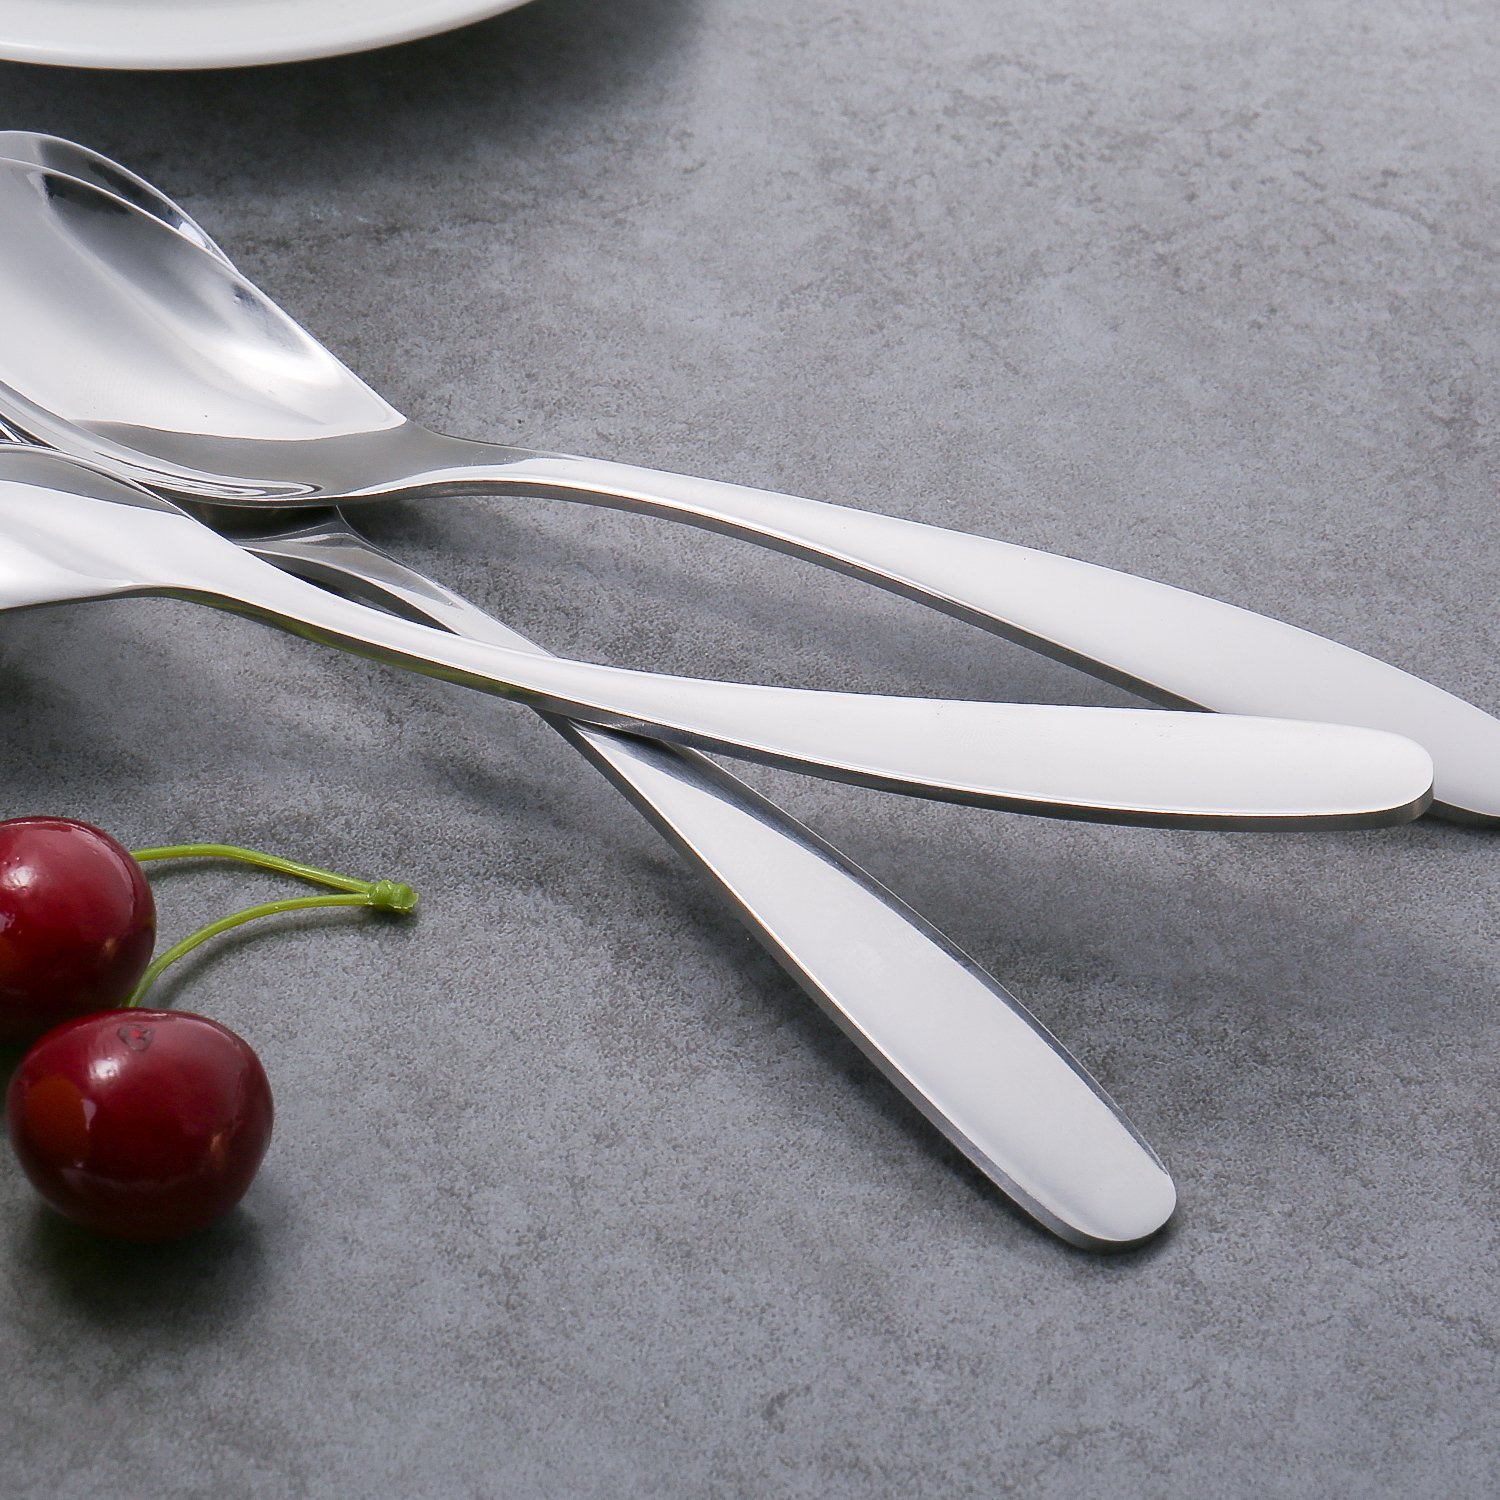 144  TEASPOONS WINDSOR FLATWARE 18//0 STAINLESS FREE SHIPPING US ONLY